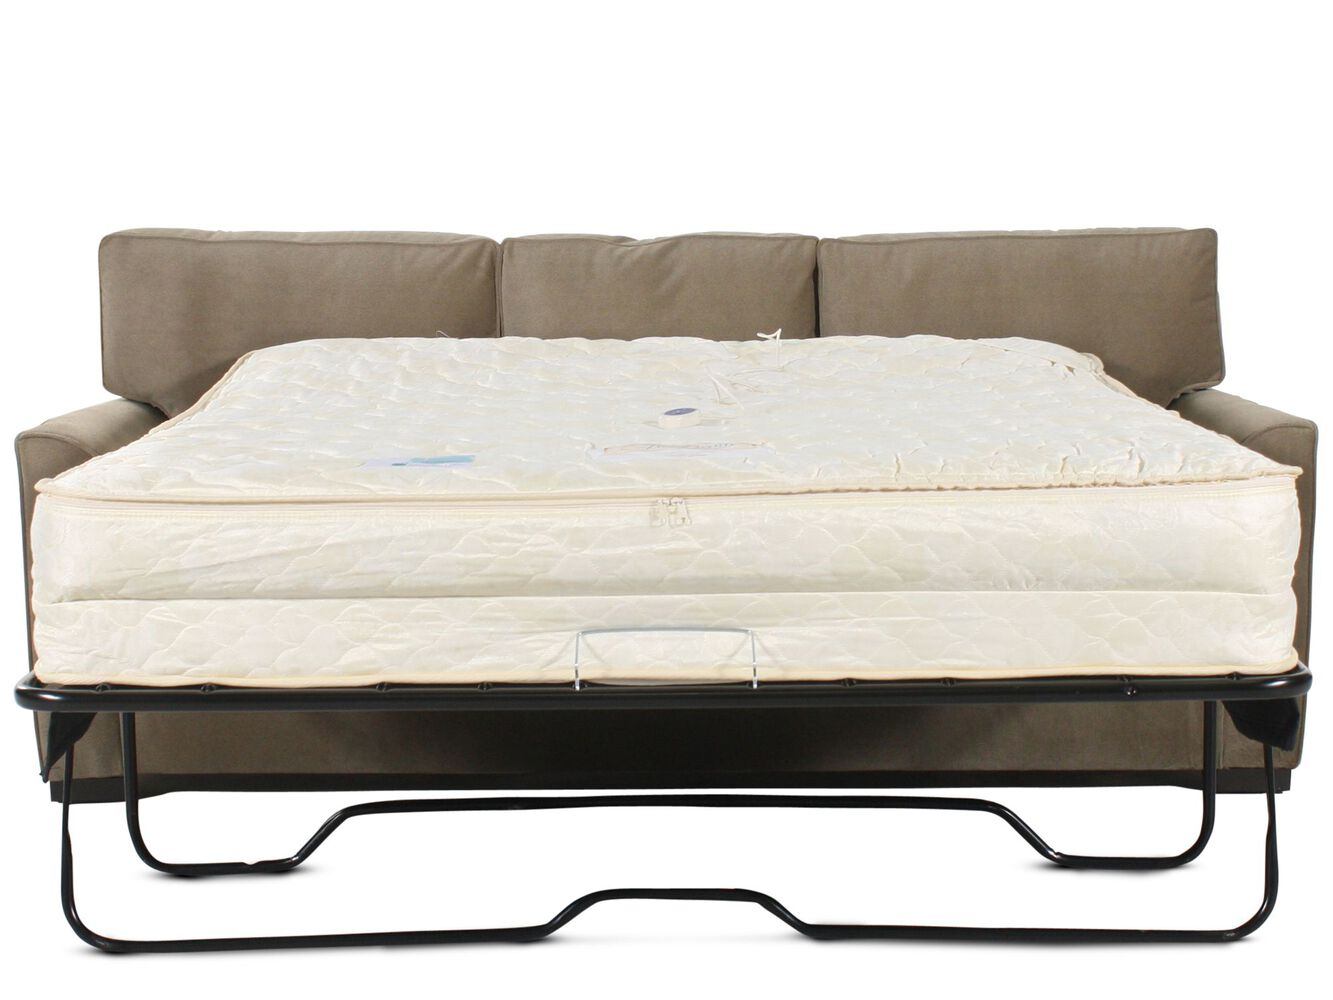 jonathan louis queen sleeper sofa with air mattress mathis brothers furniture. Black Bedroom Furniture Sets. Home Design Ideas